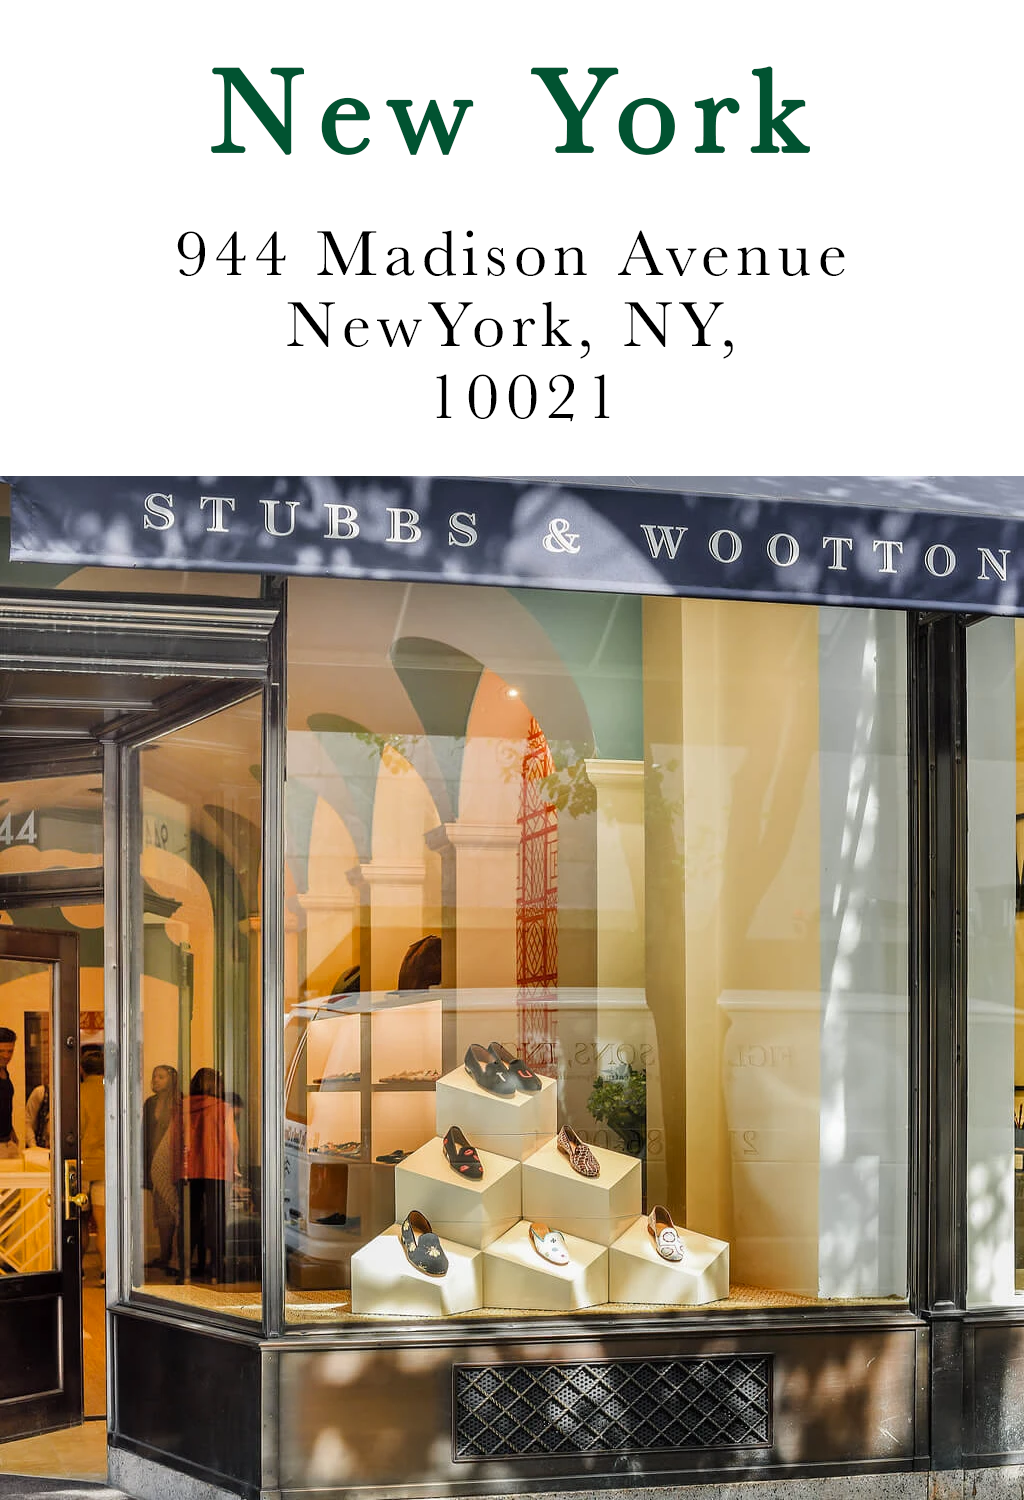 Click for directions to our NY showroom